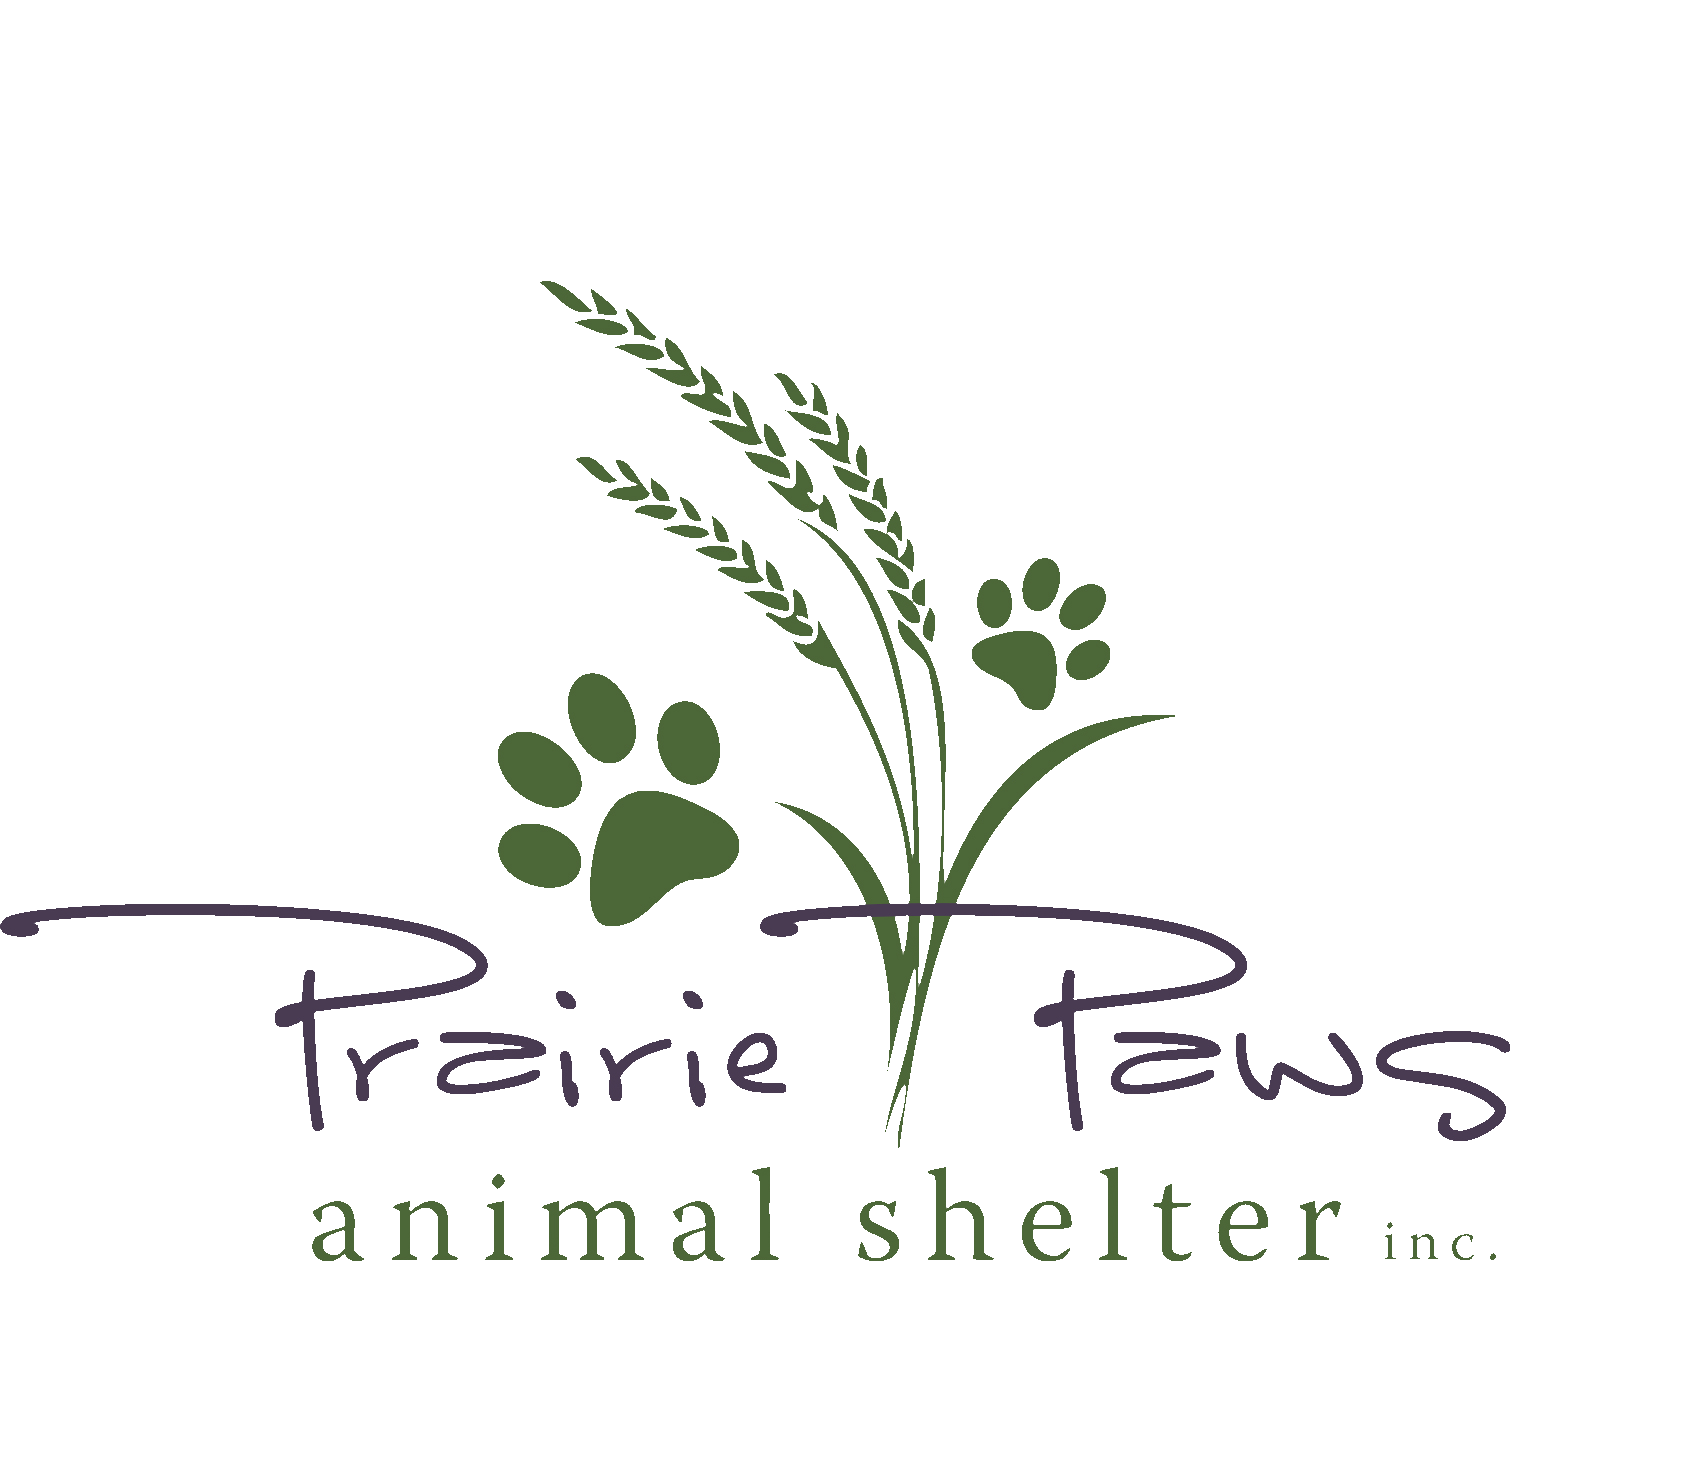 Prairie Paws Animal Shelter